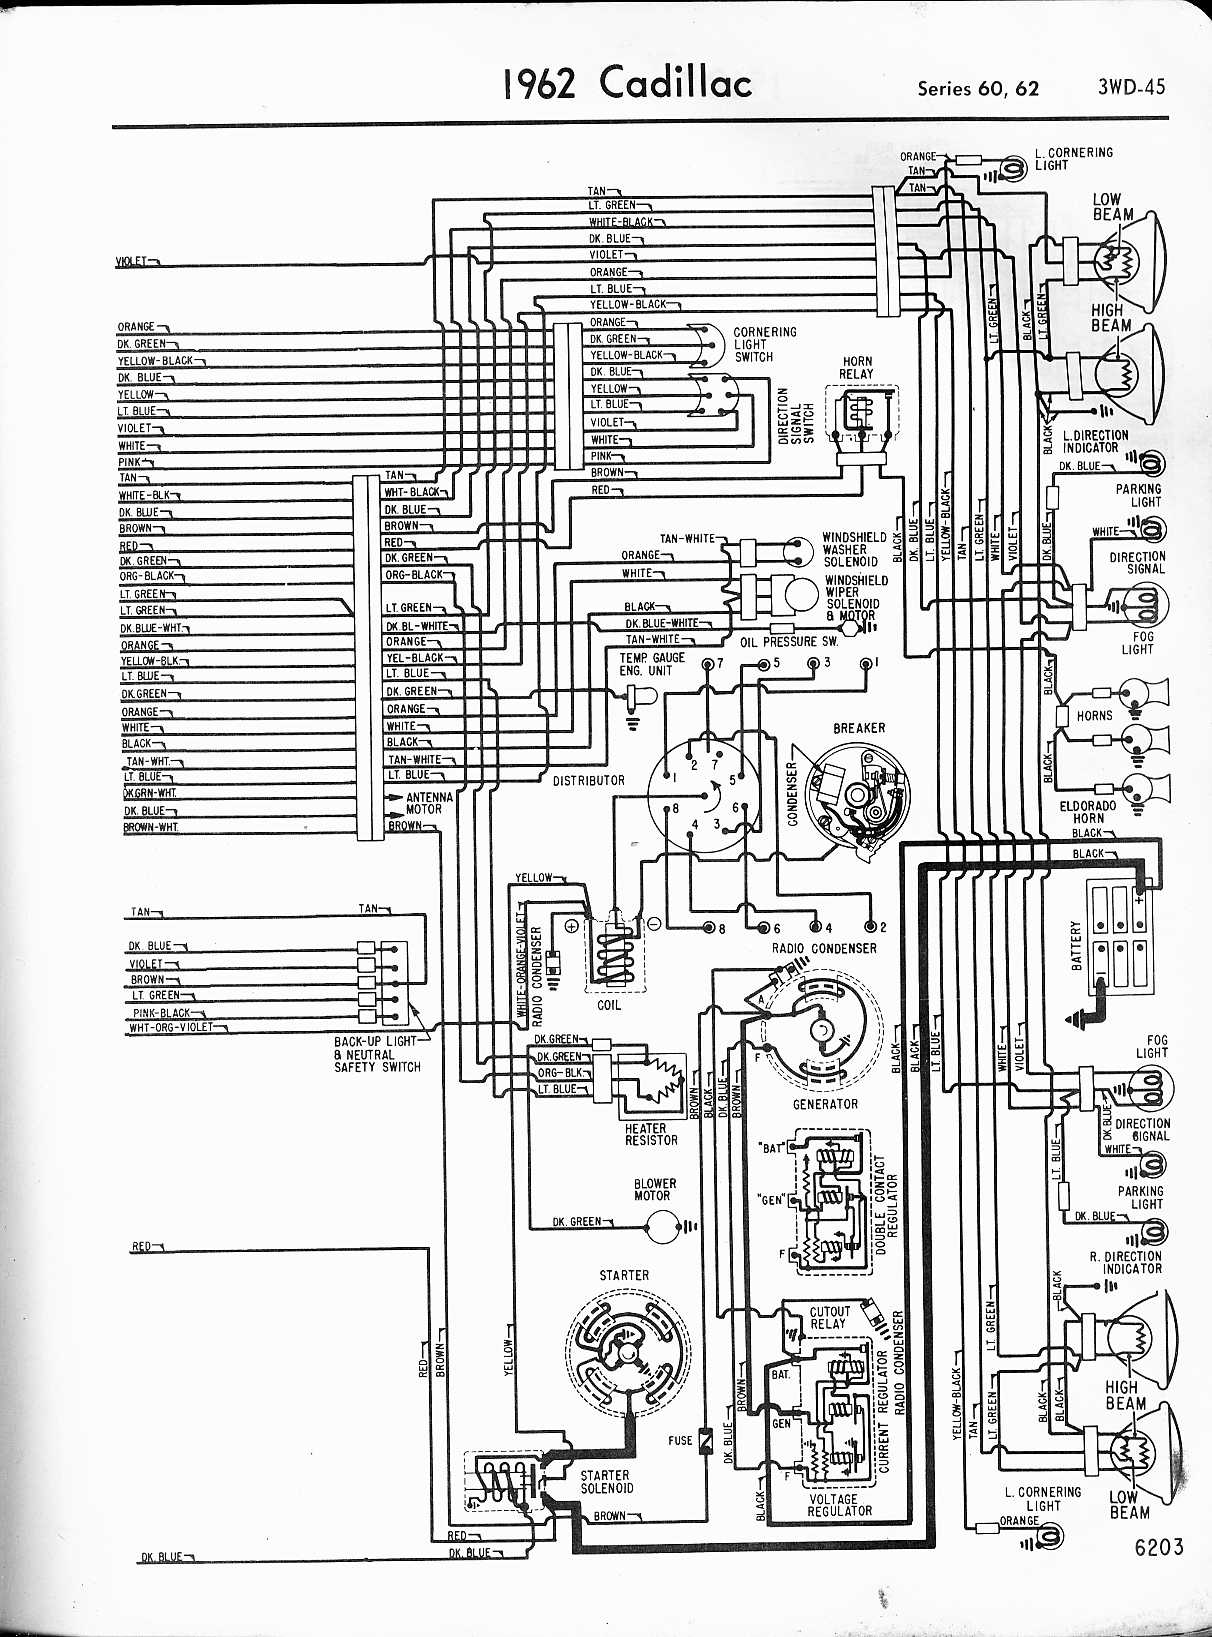 1962 cadillac wiring diagram wiring diagram schematics 1969 jeepster wiring- diagram 1962 cadillac wiring diagram